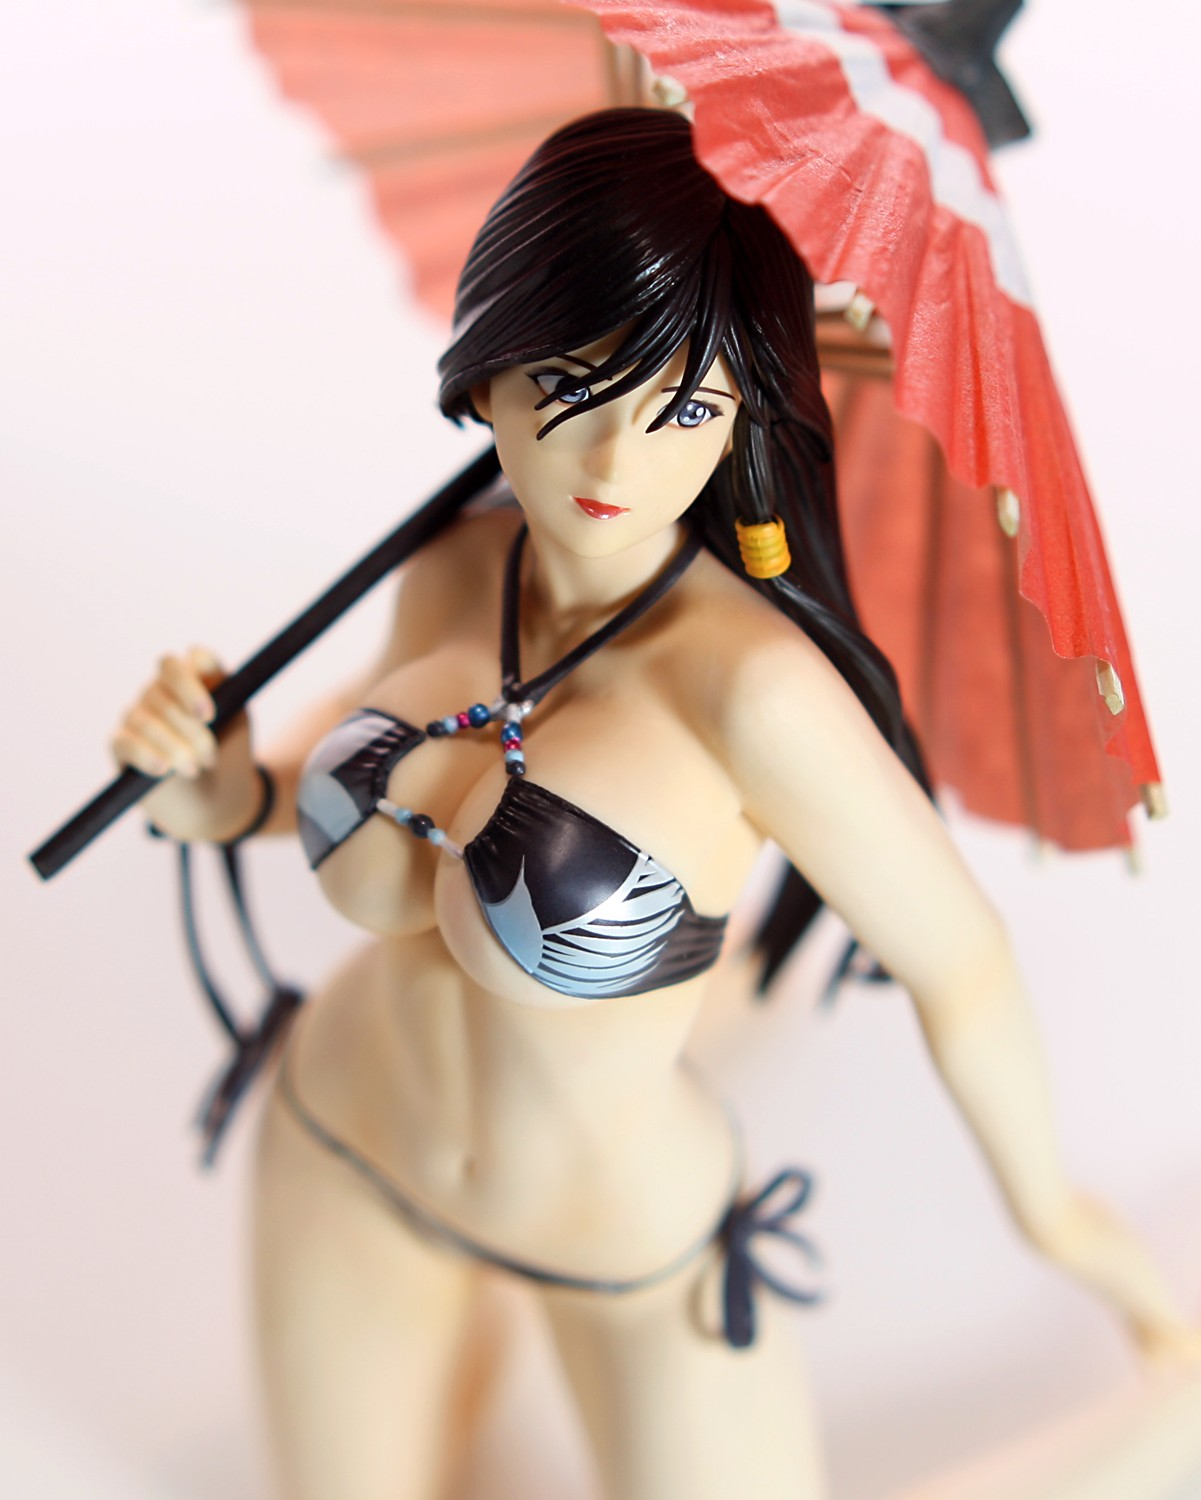 Kotobukiya Kokoro from Dead or Alive Review